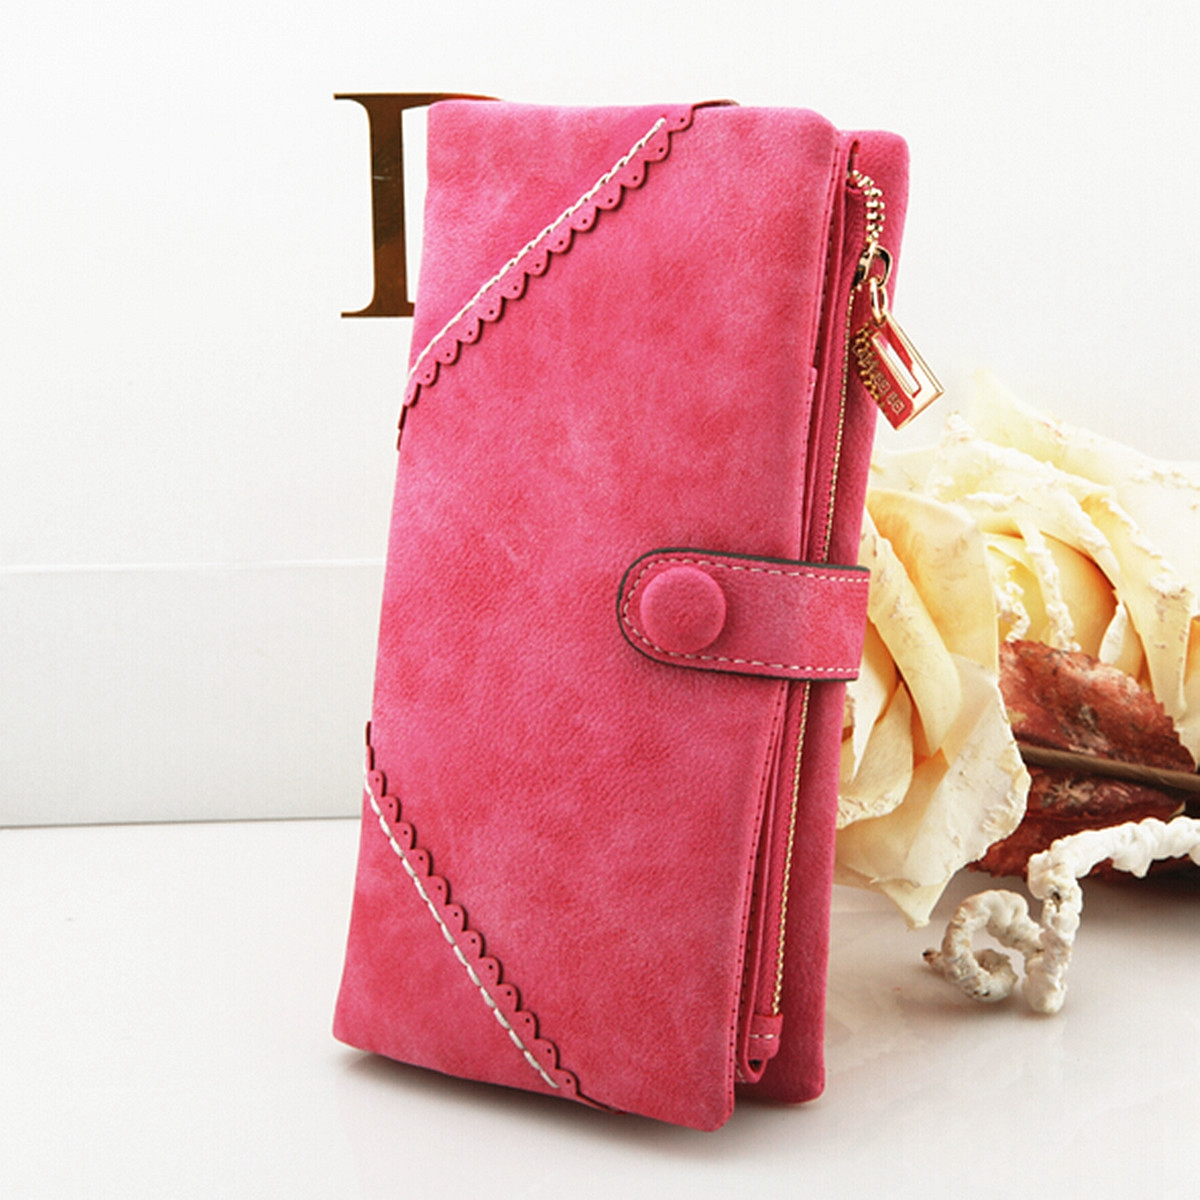 Handbags  Ladies Designer Leather Handbags Online